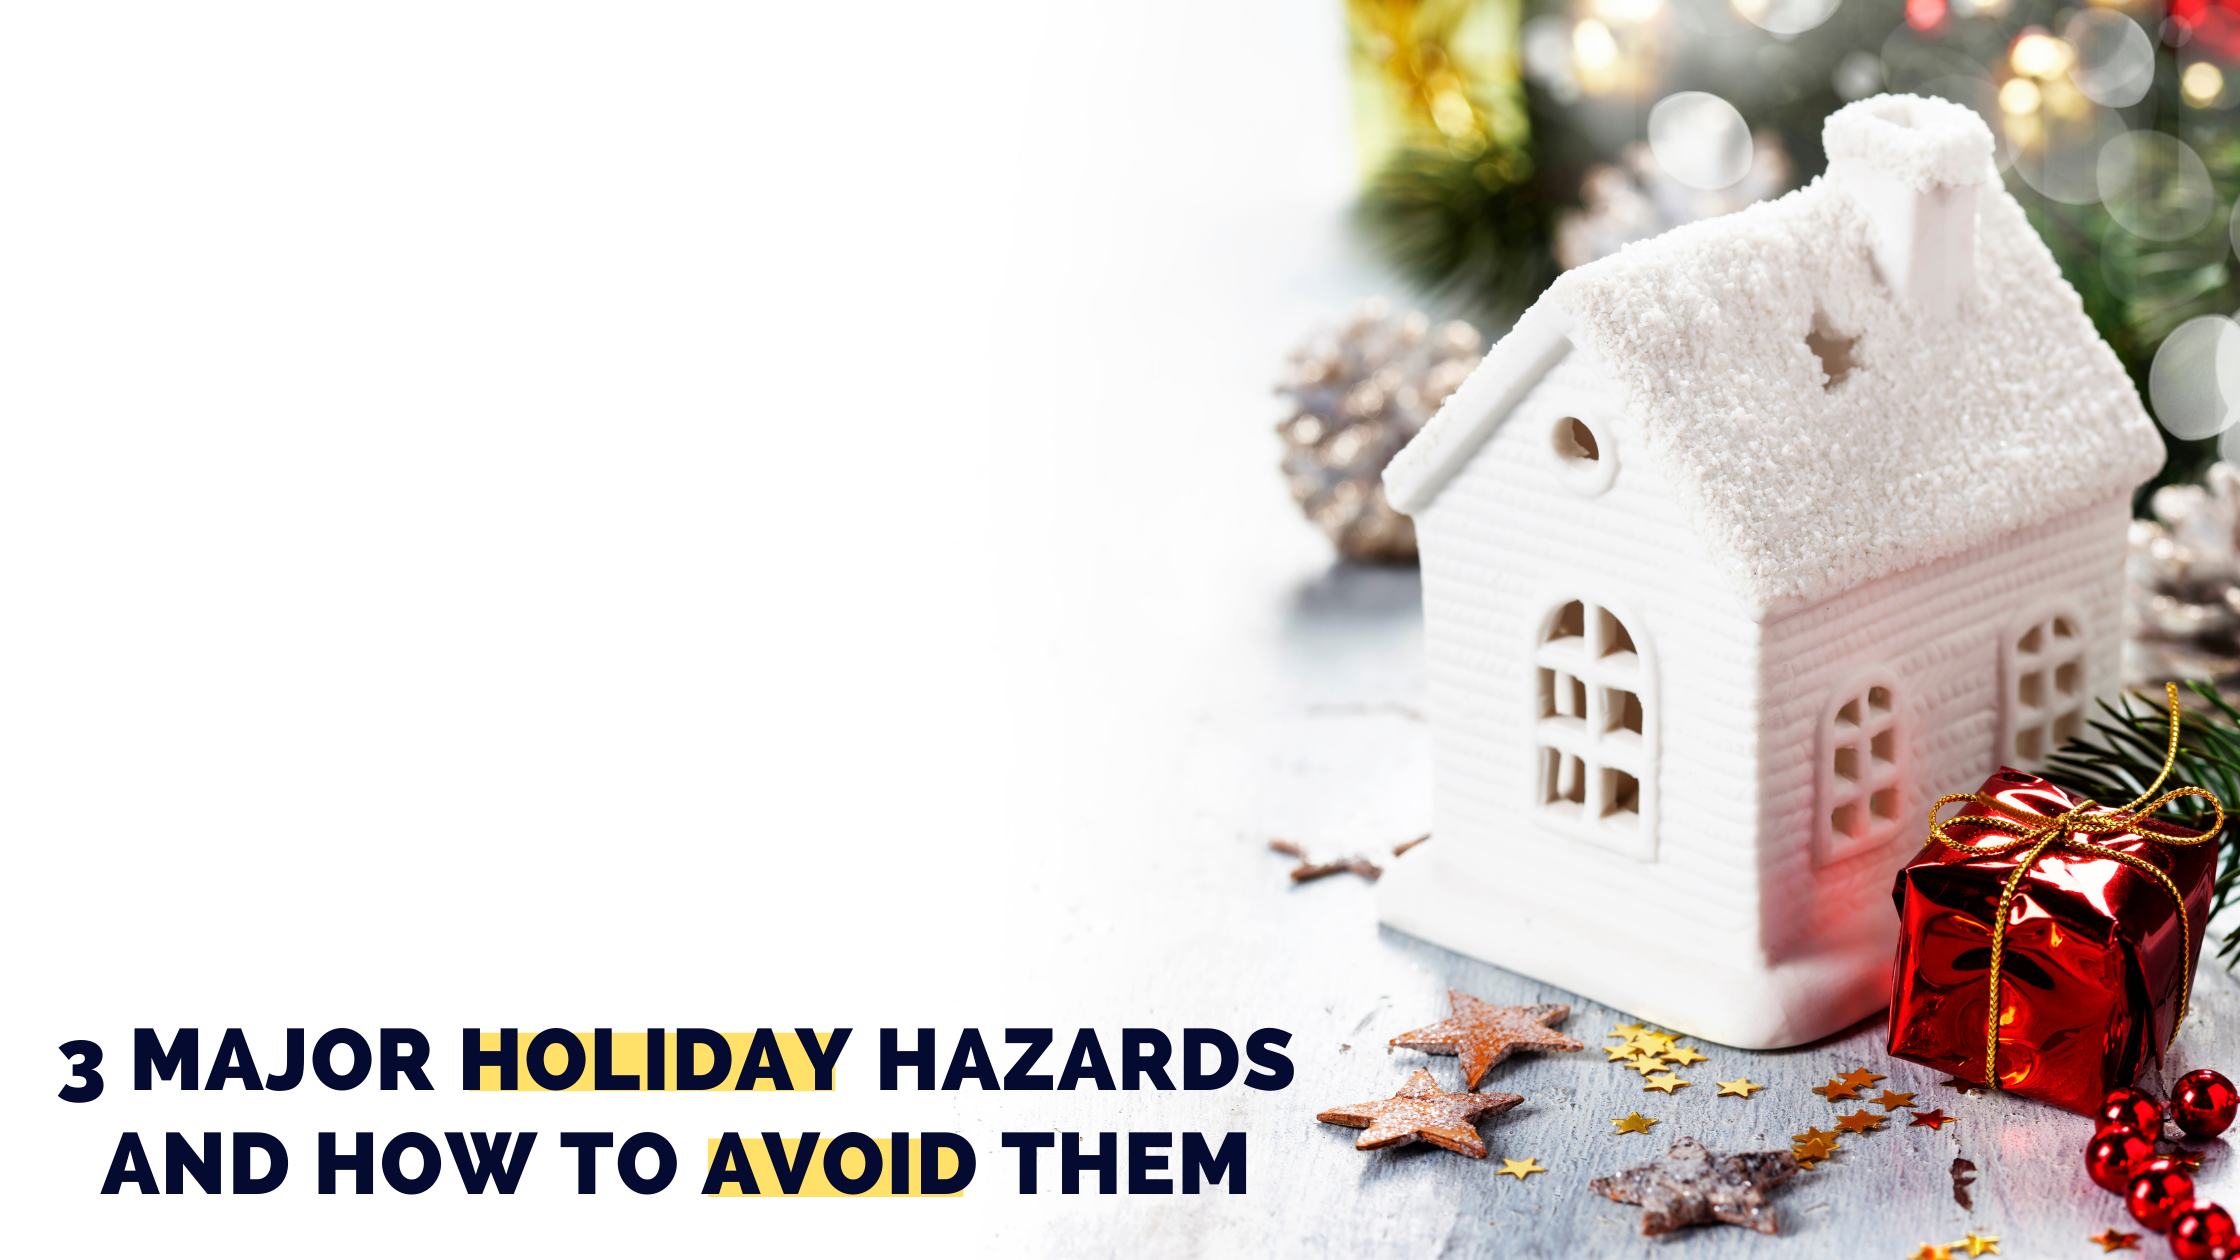 3 Major Holiday Hazards and How to Avoid Them